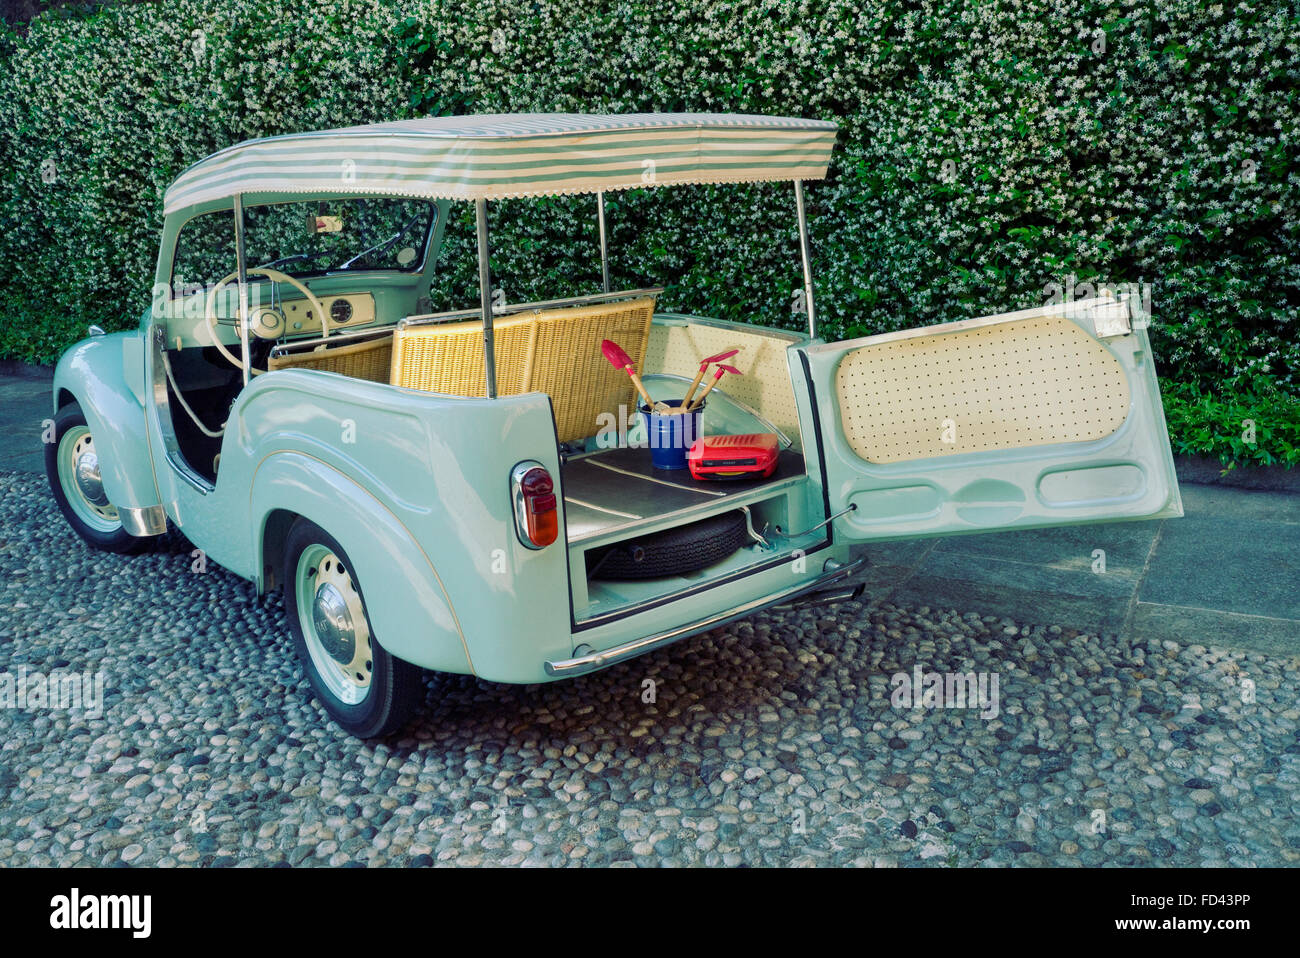 1954 Fiat Topolino Jolly Beach car Imagen De Stock